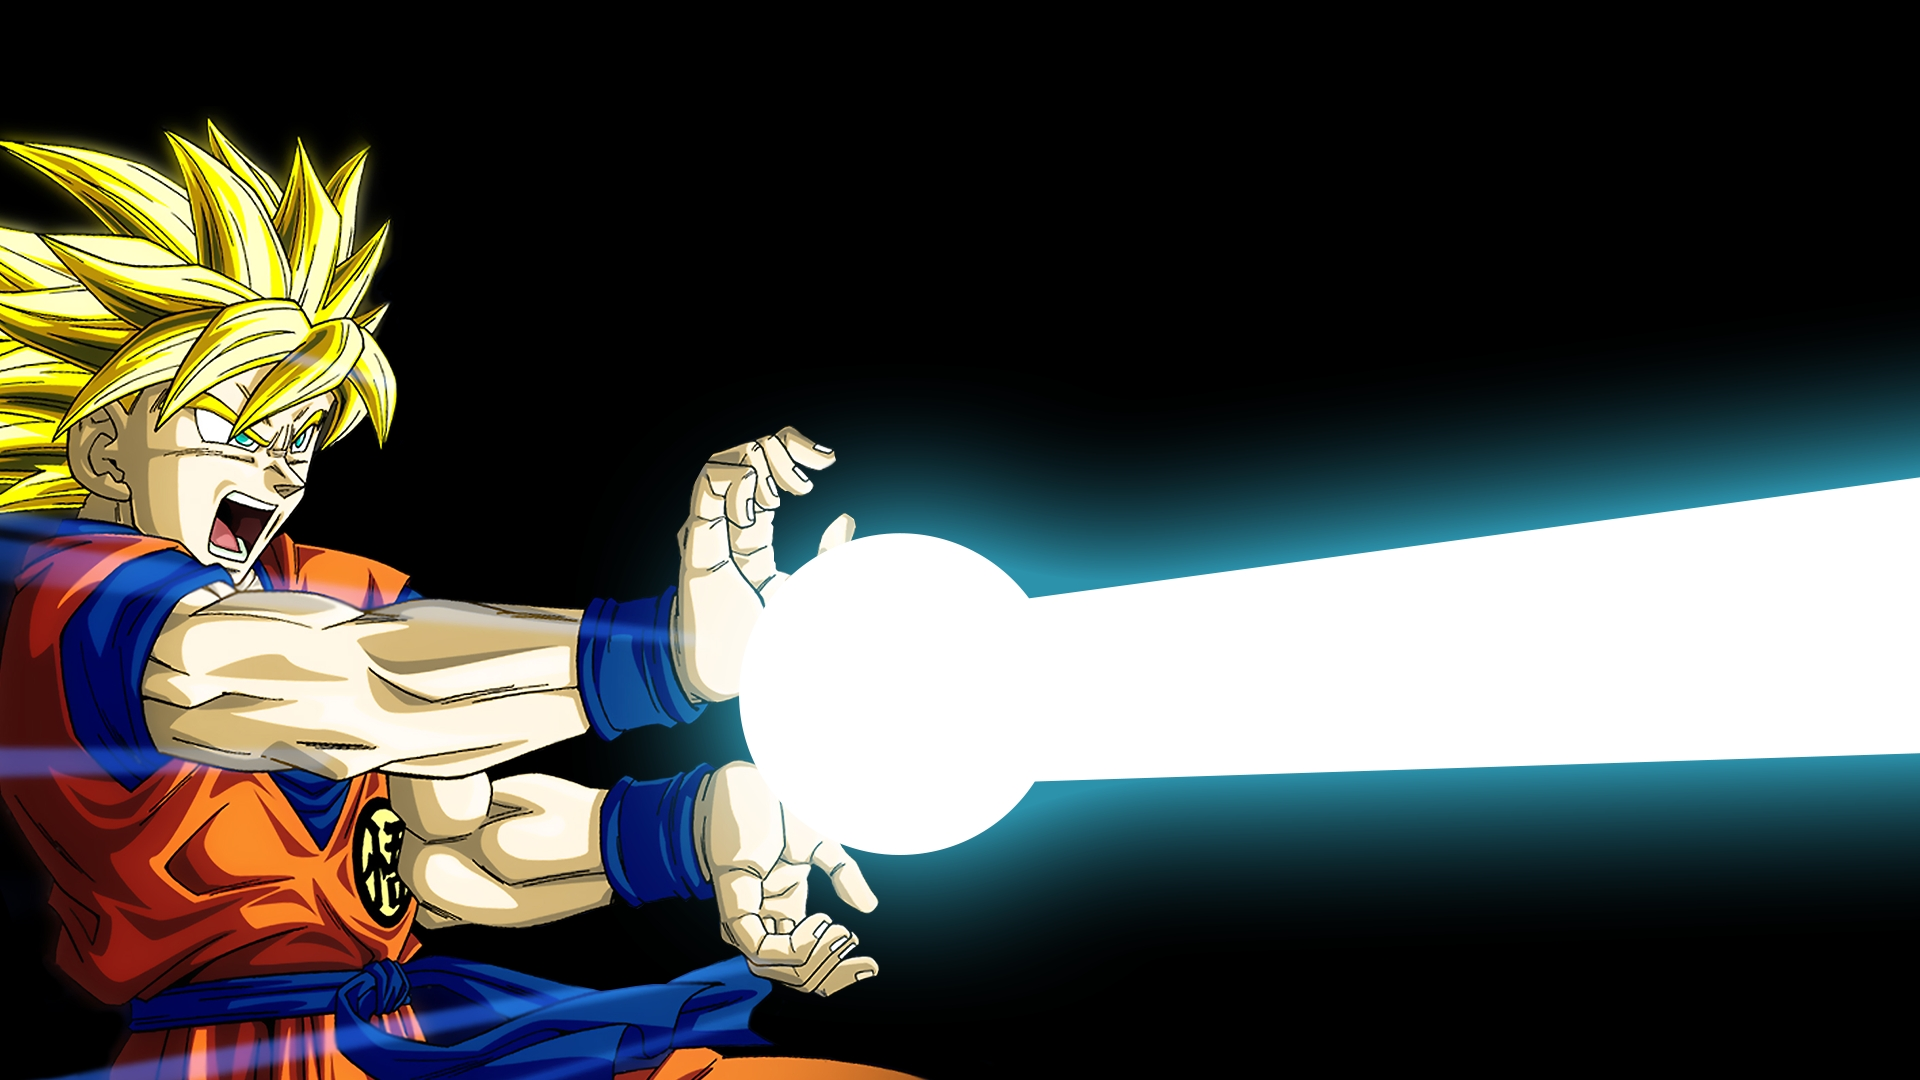 goku's kamehameha wave full hd wallpaper and background image